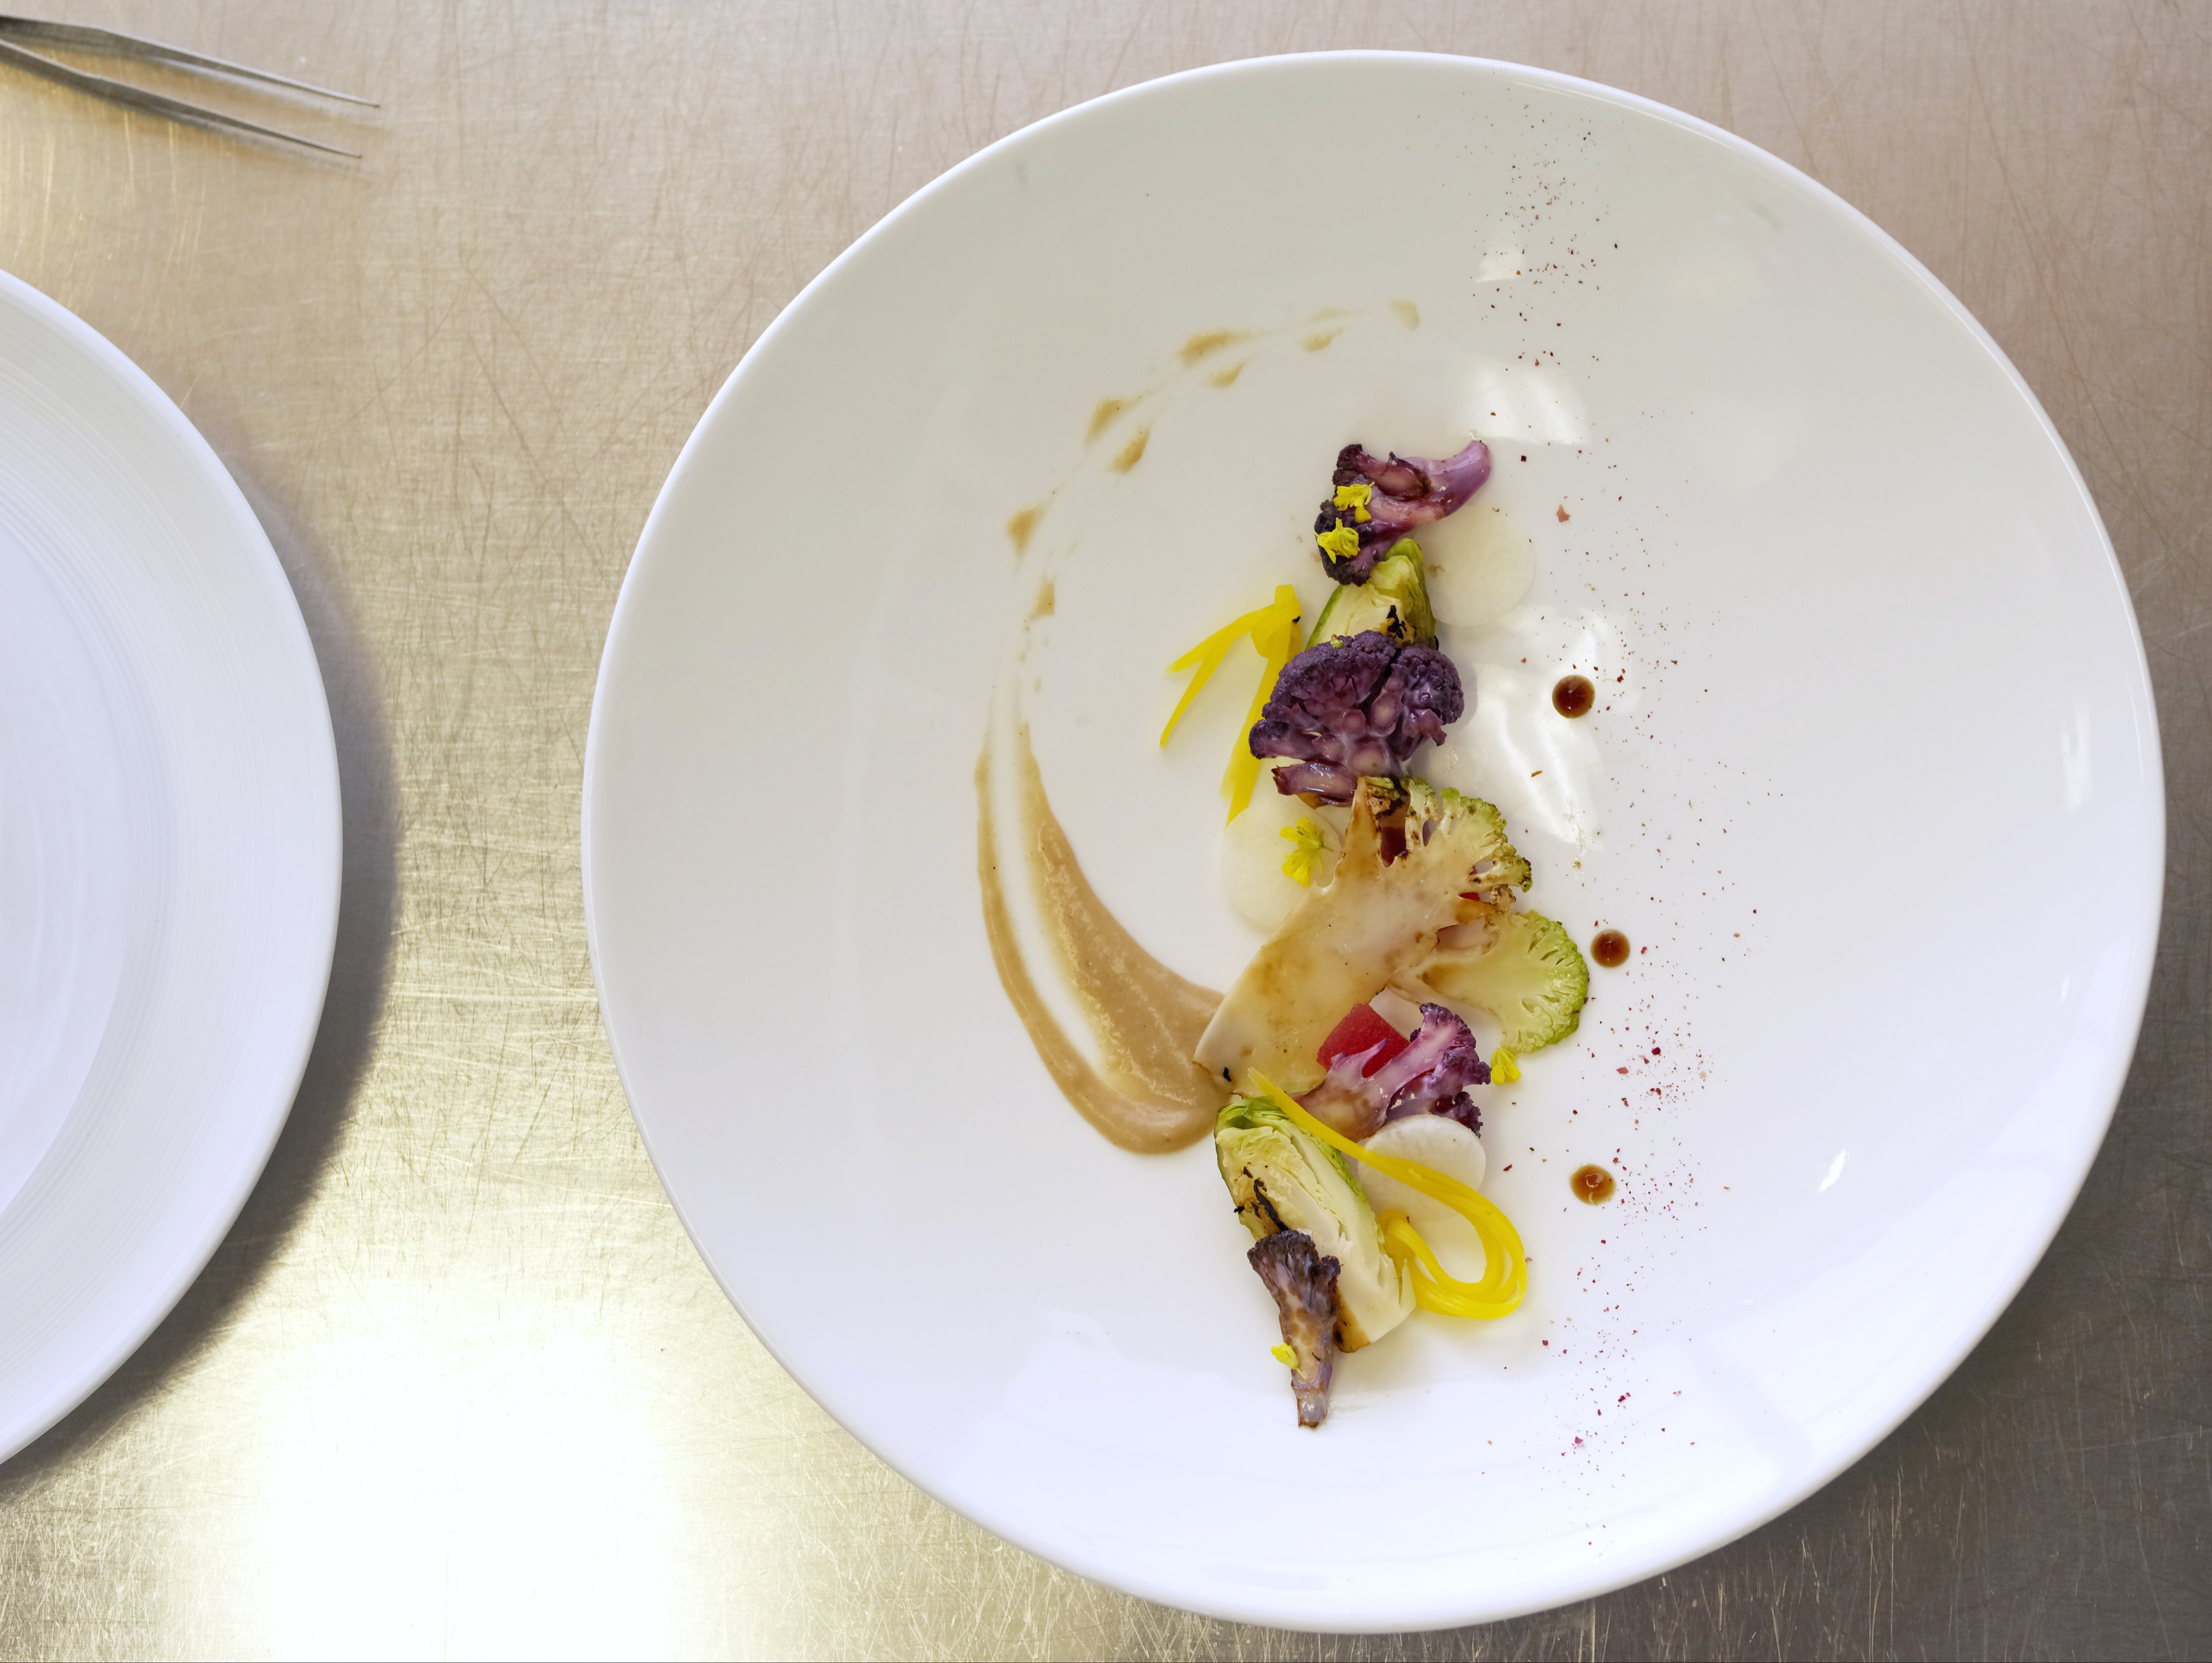 Making lettuce luxury: Vegetarian menus succeed in fine dining